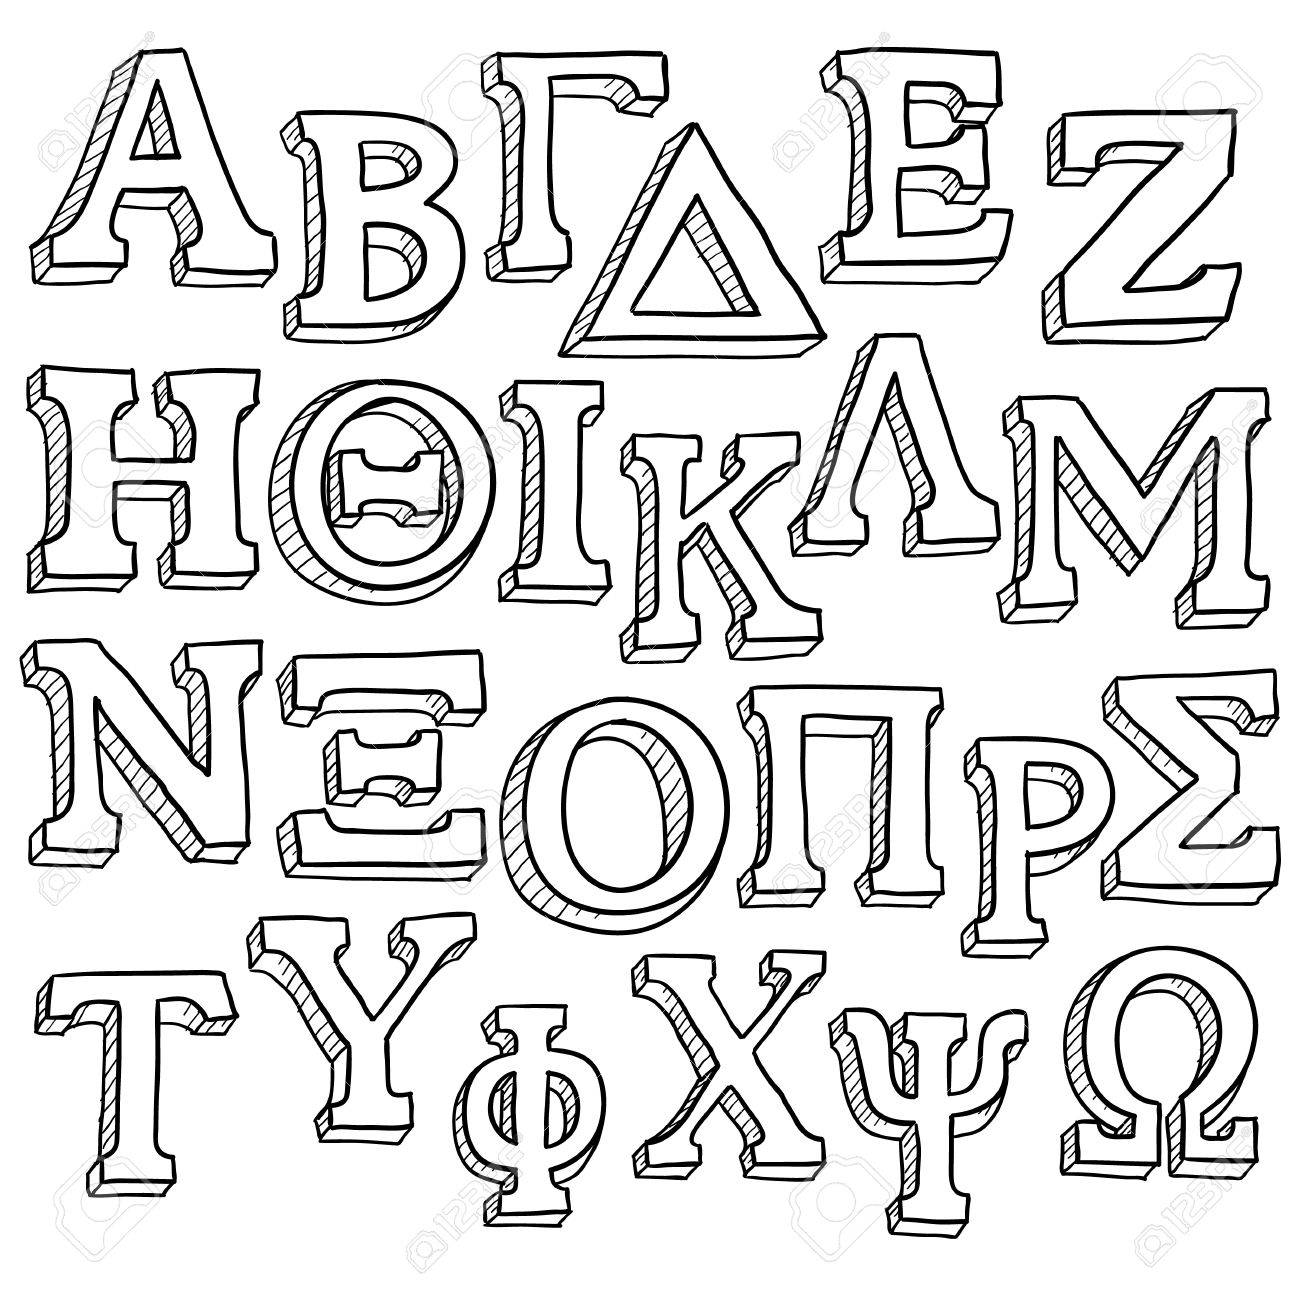 Doodle style Greek Alphabet useful for sorority and fraternity